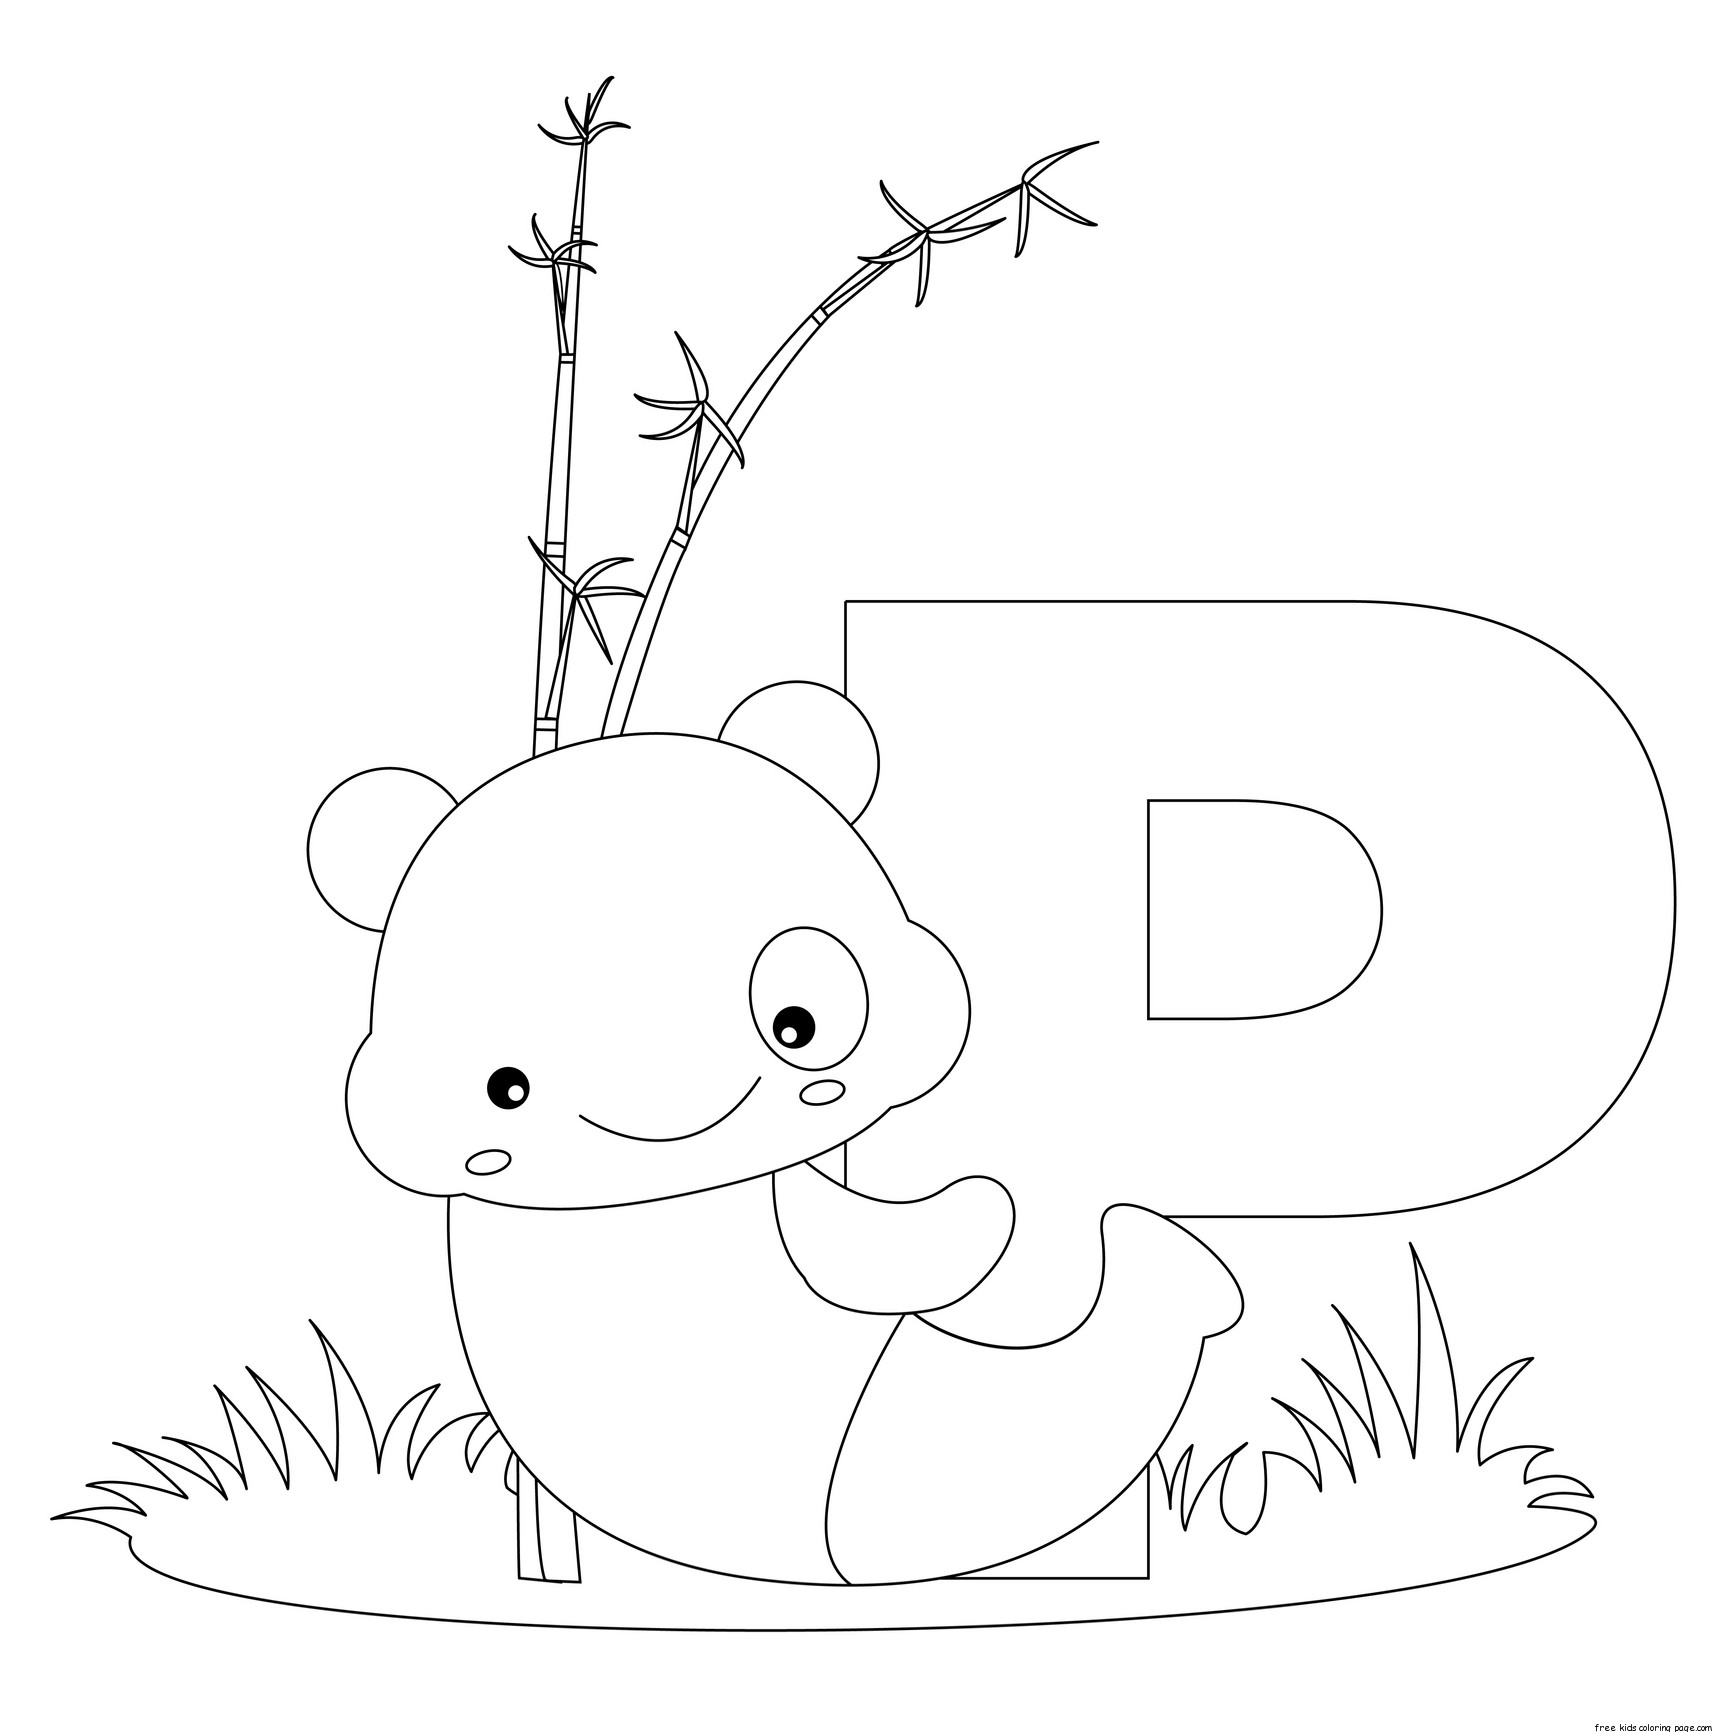 Animal Alphabet Letters To Print And Color Letter P For Pandafree Printable Coloring Pages For Kids